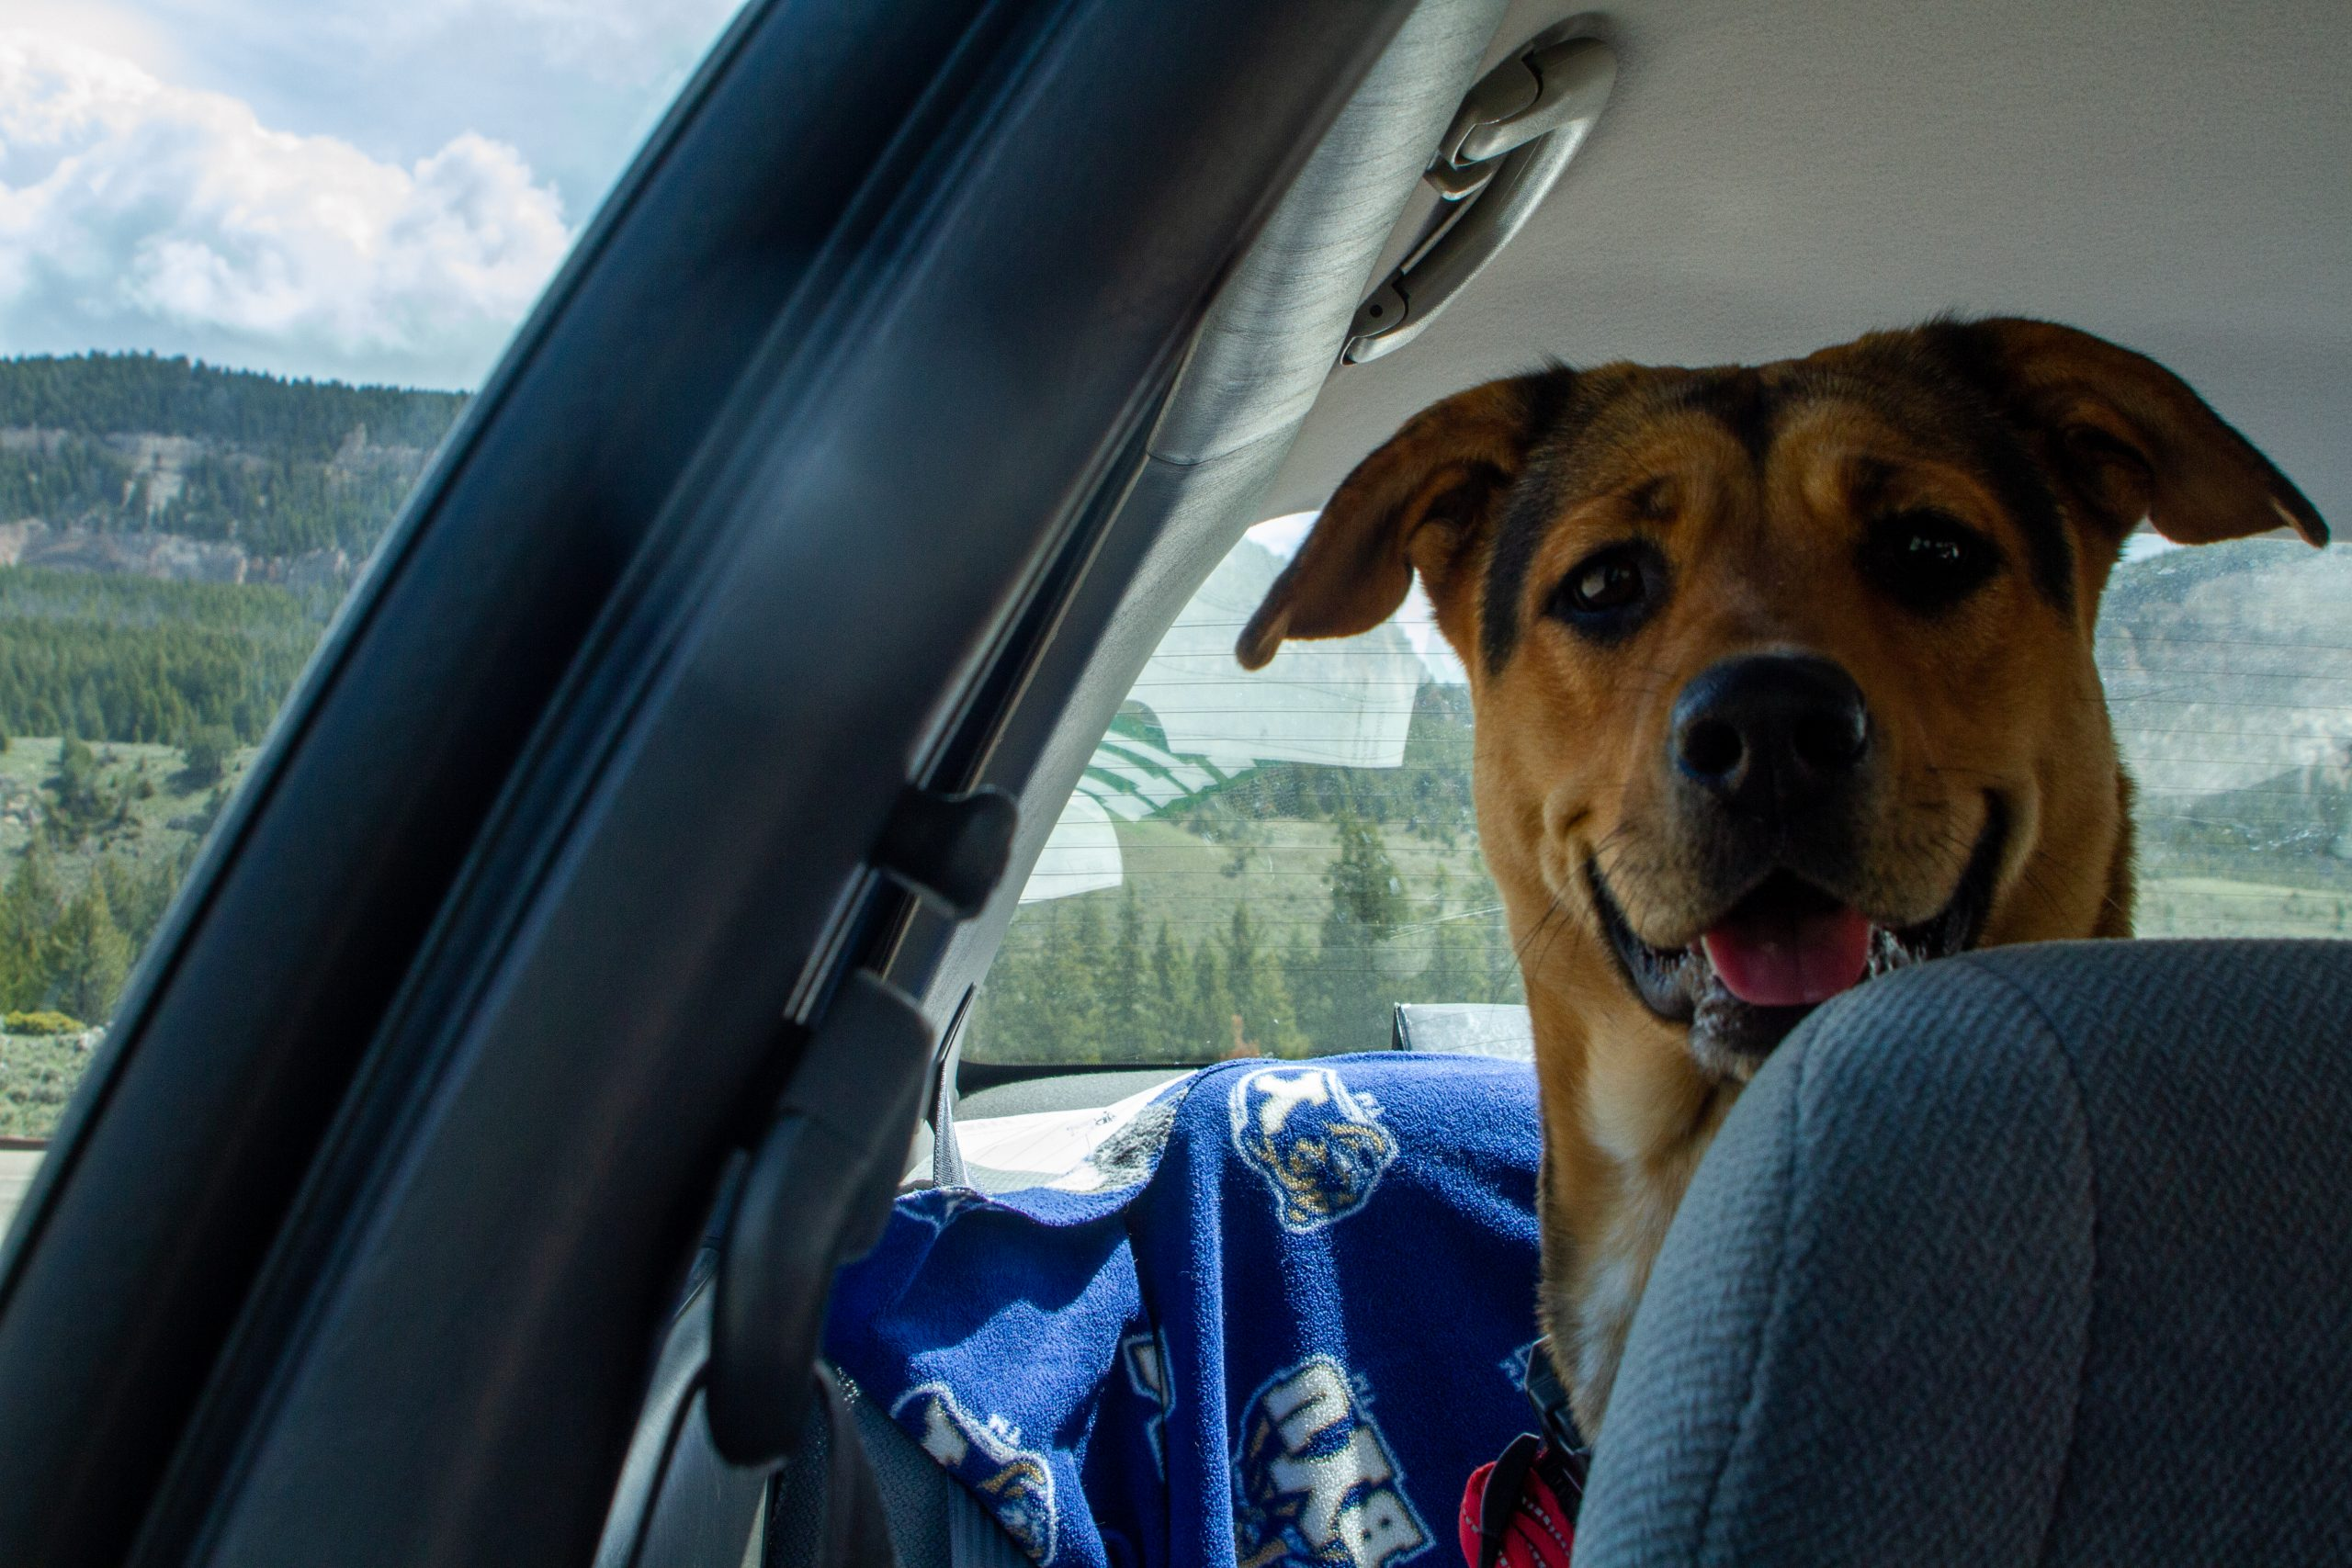 Black and tan dog sitting in the back seat of a car